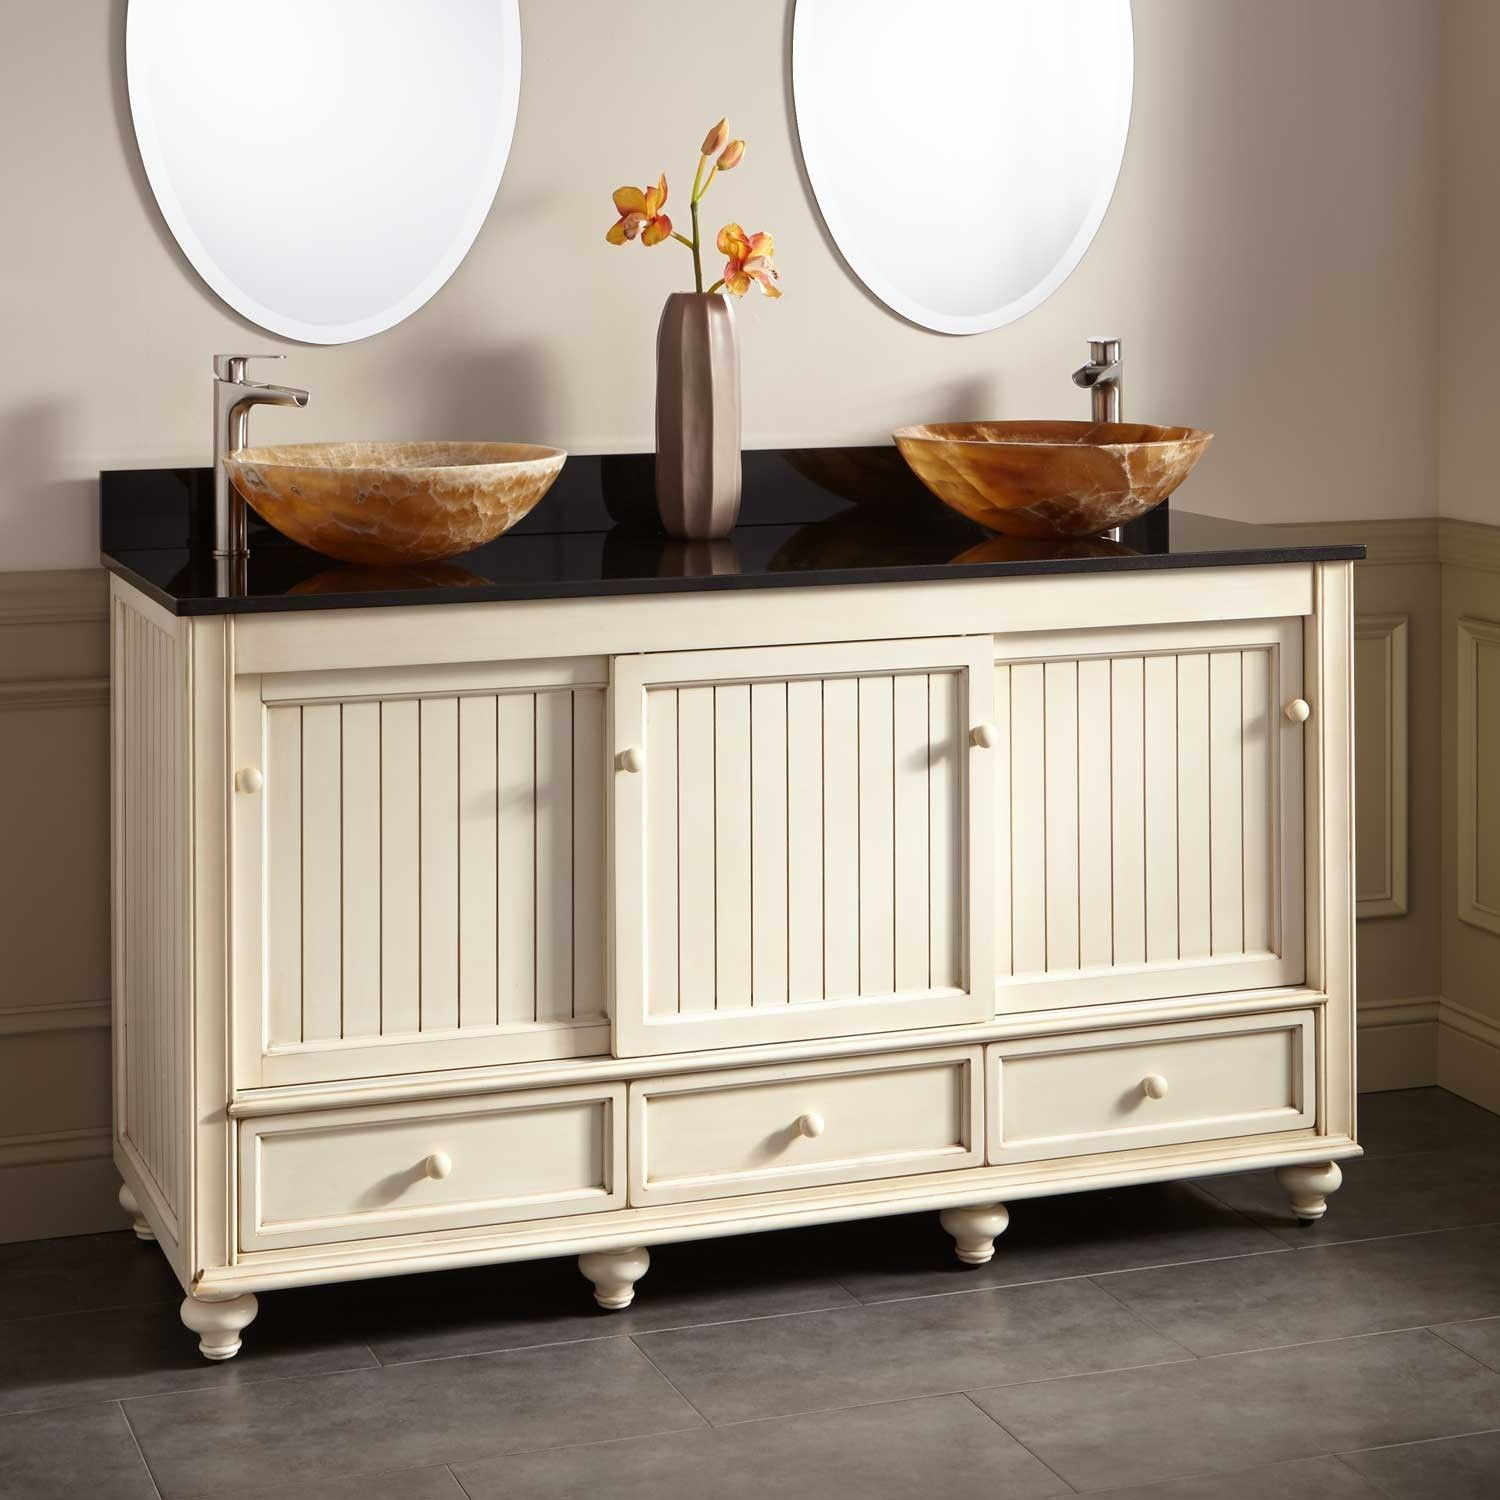 60 bristol beach double vessel sink vanity antique white vanity rh pinterest com